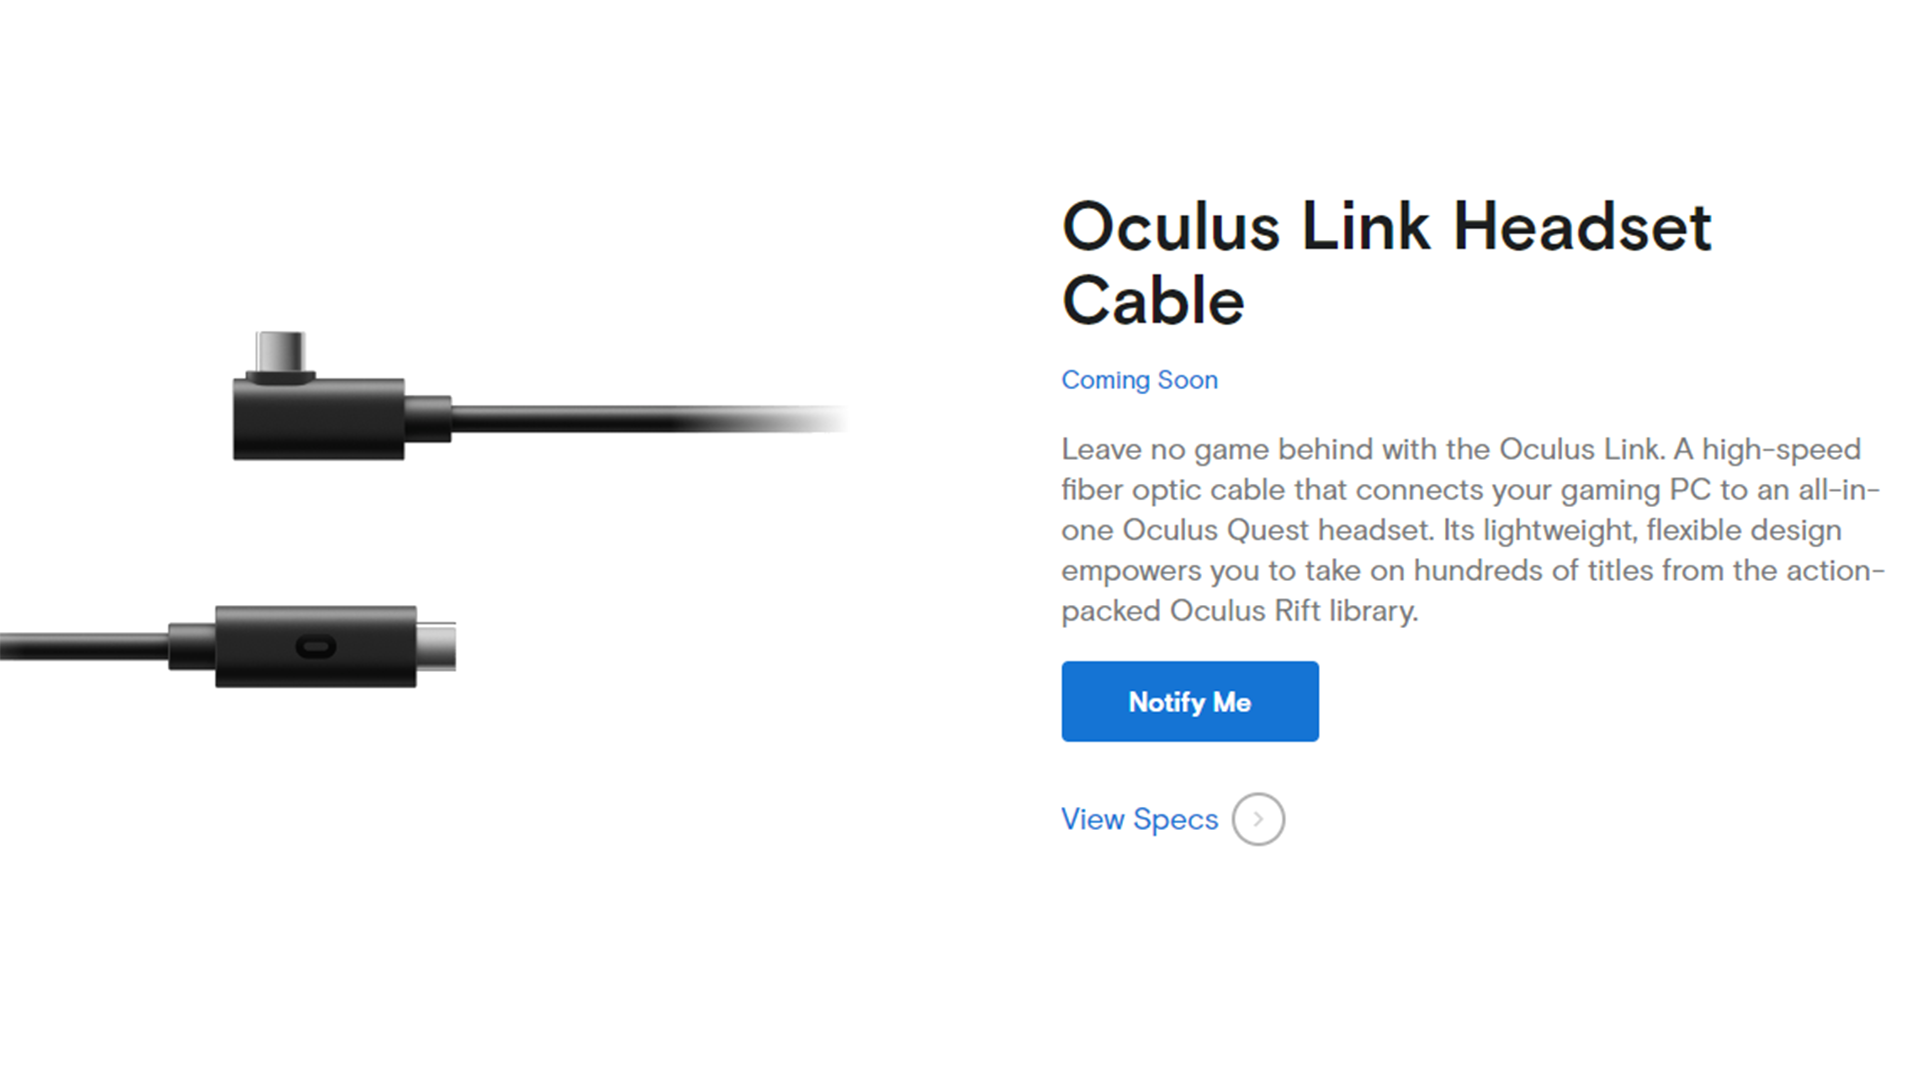 Holiday VR gift guide 2019 - Oculus Link Headset Cable